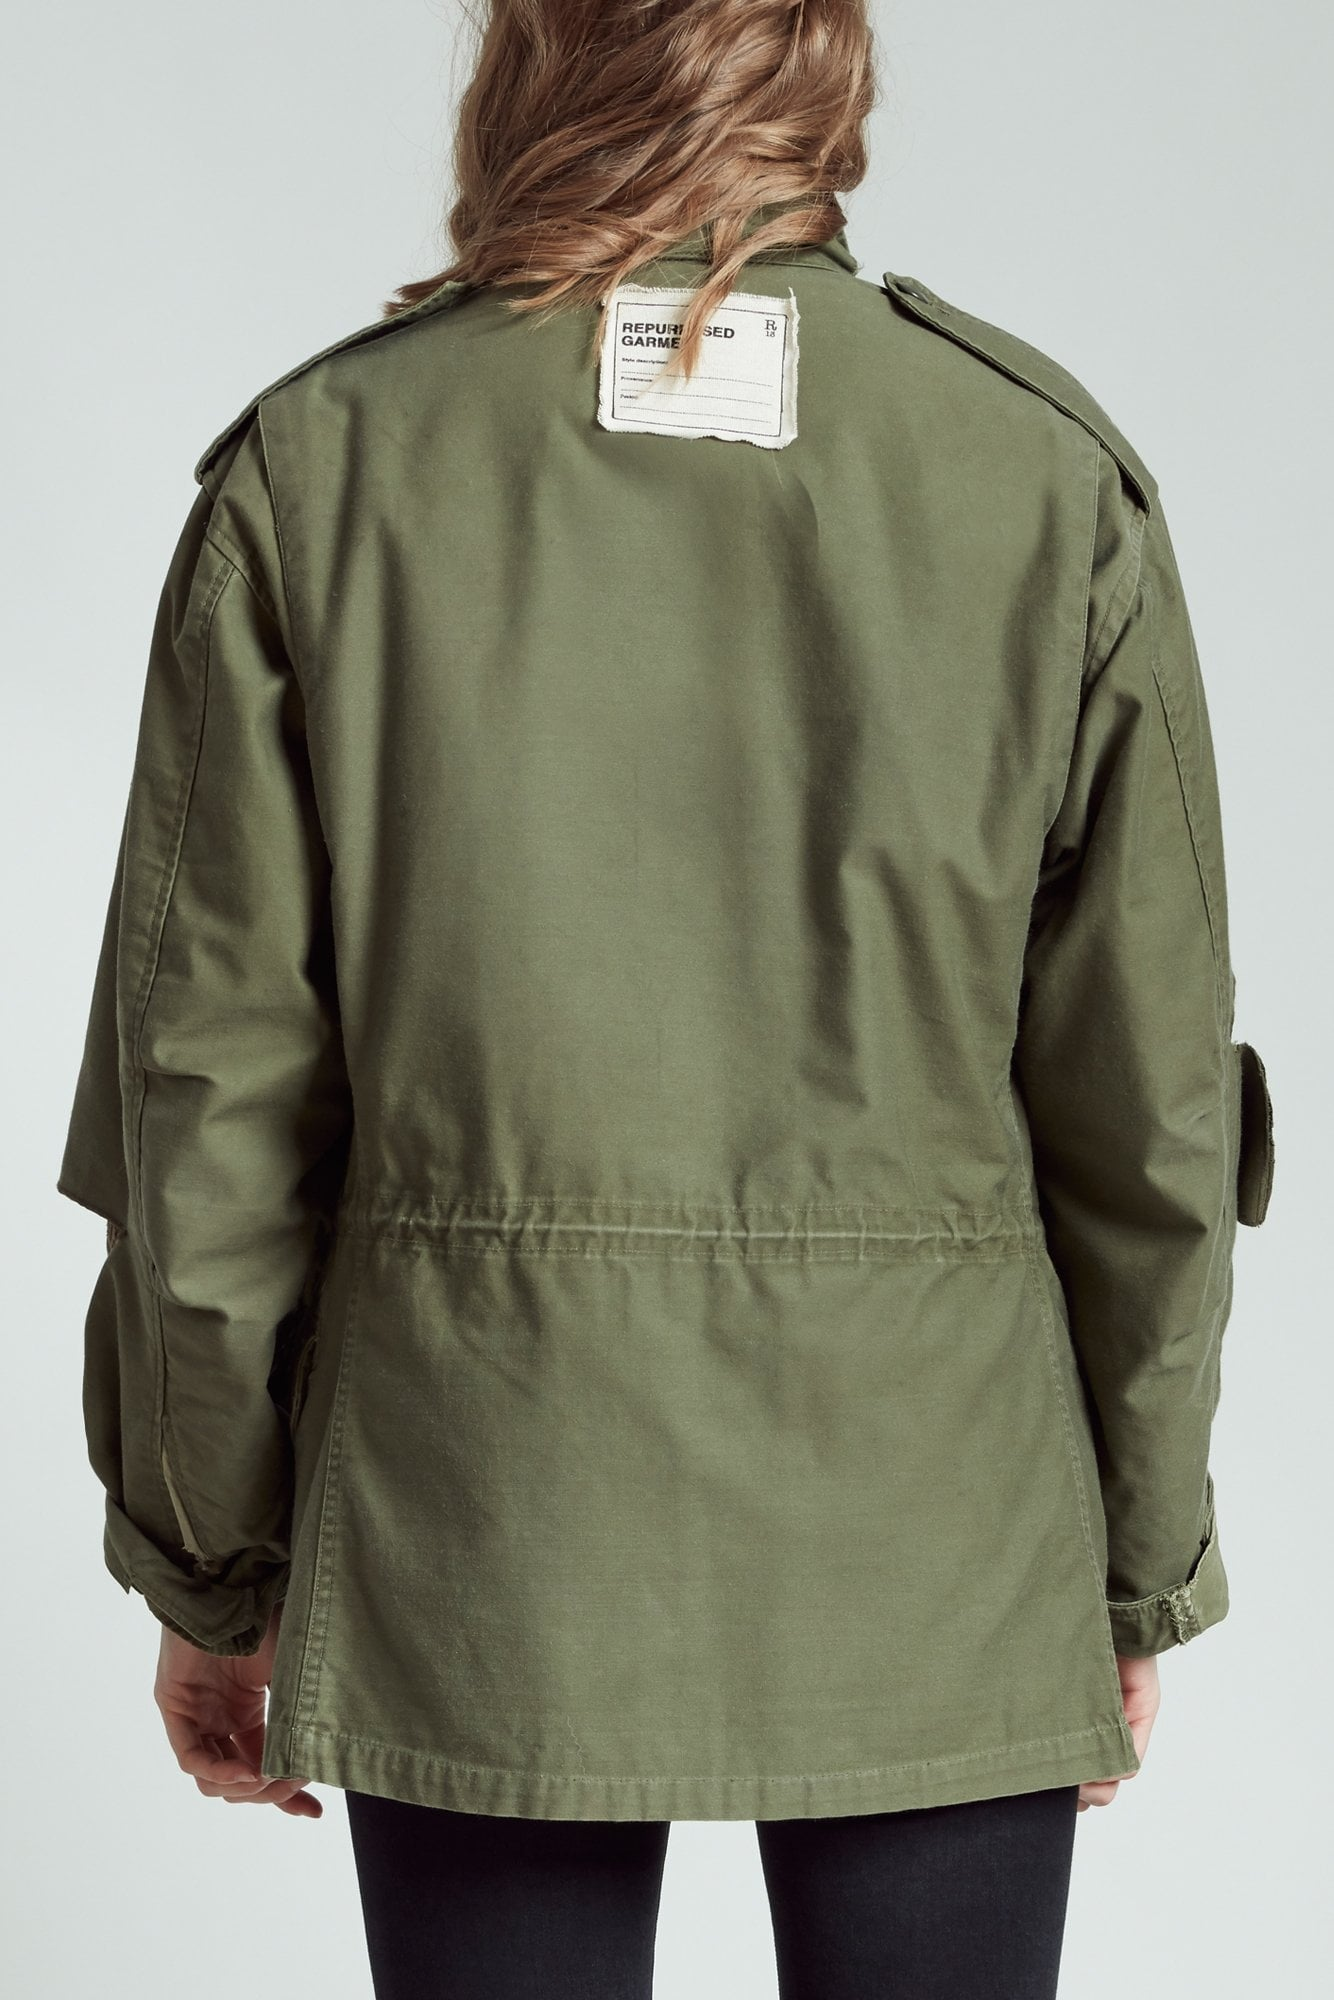 M65 Field Jacket with Liner - Olive with Leopard